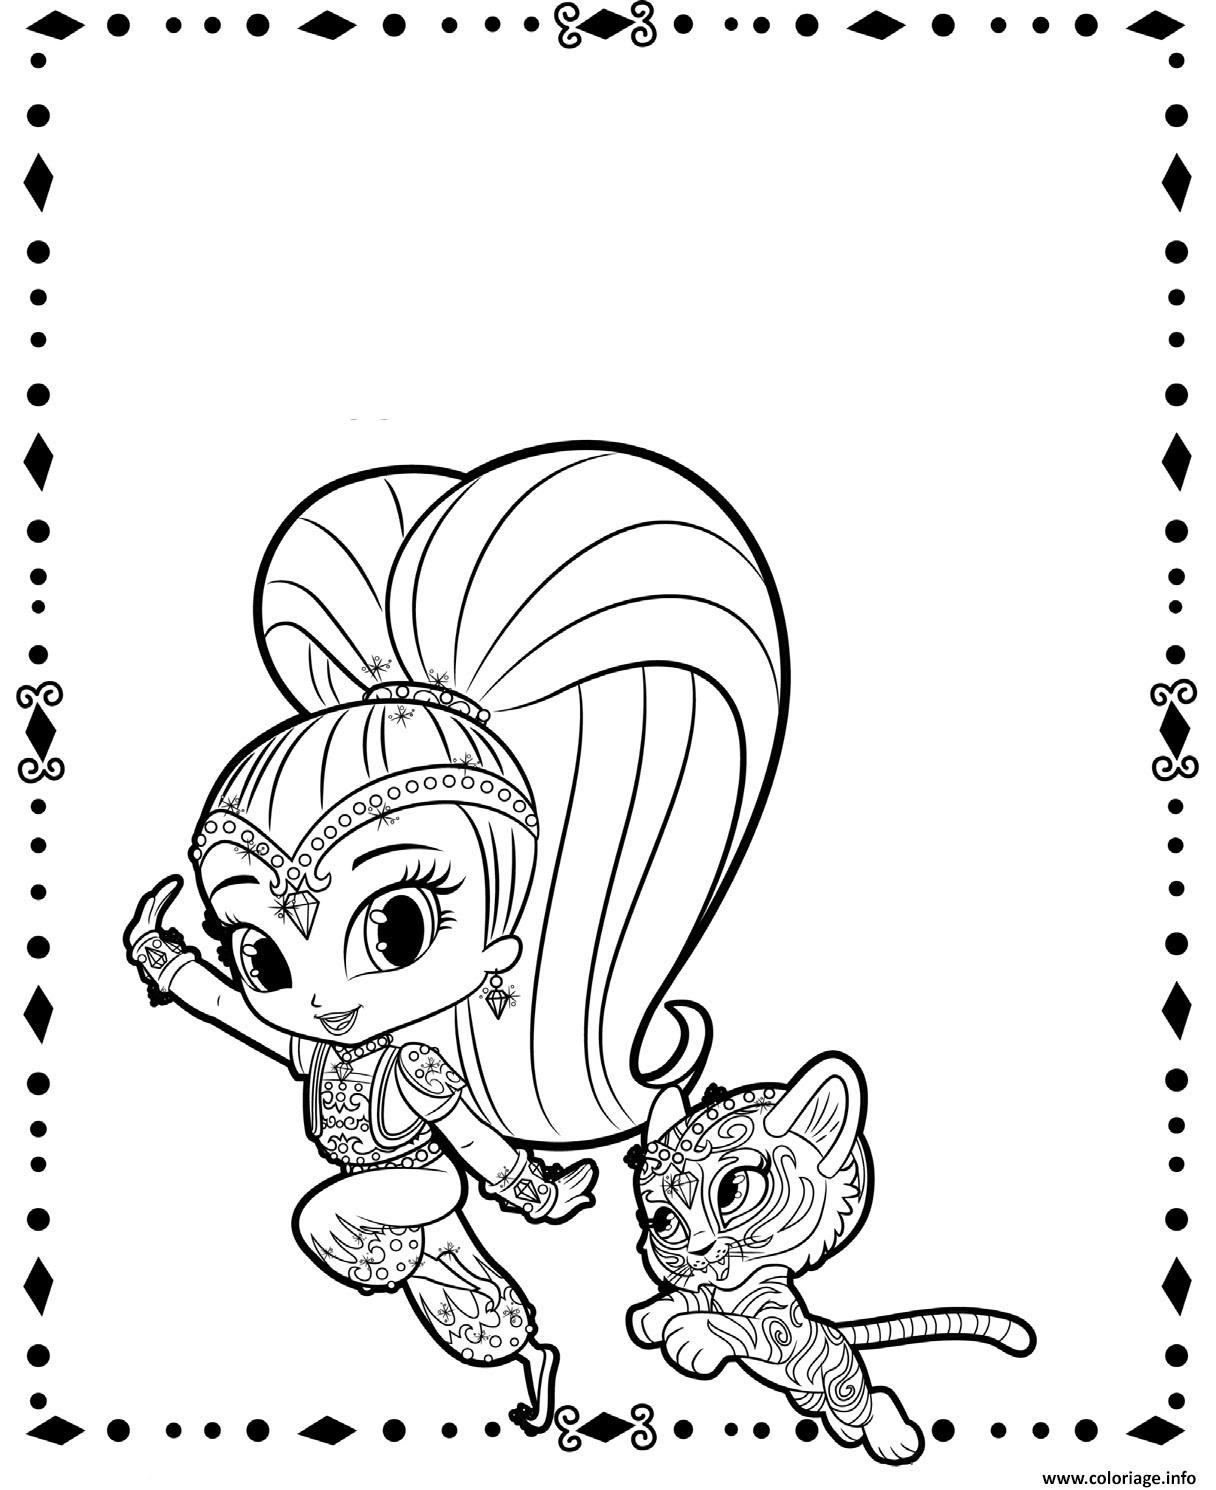 Coloriage Shine And Tiger From Shimmer Et Shine Dessin   Imprimer